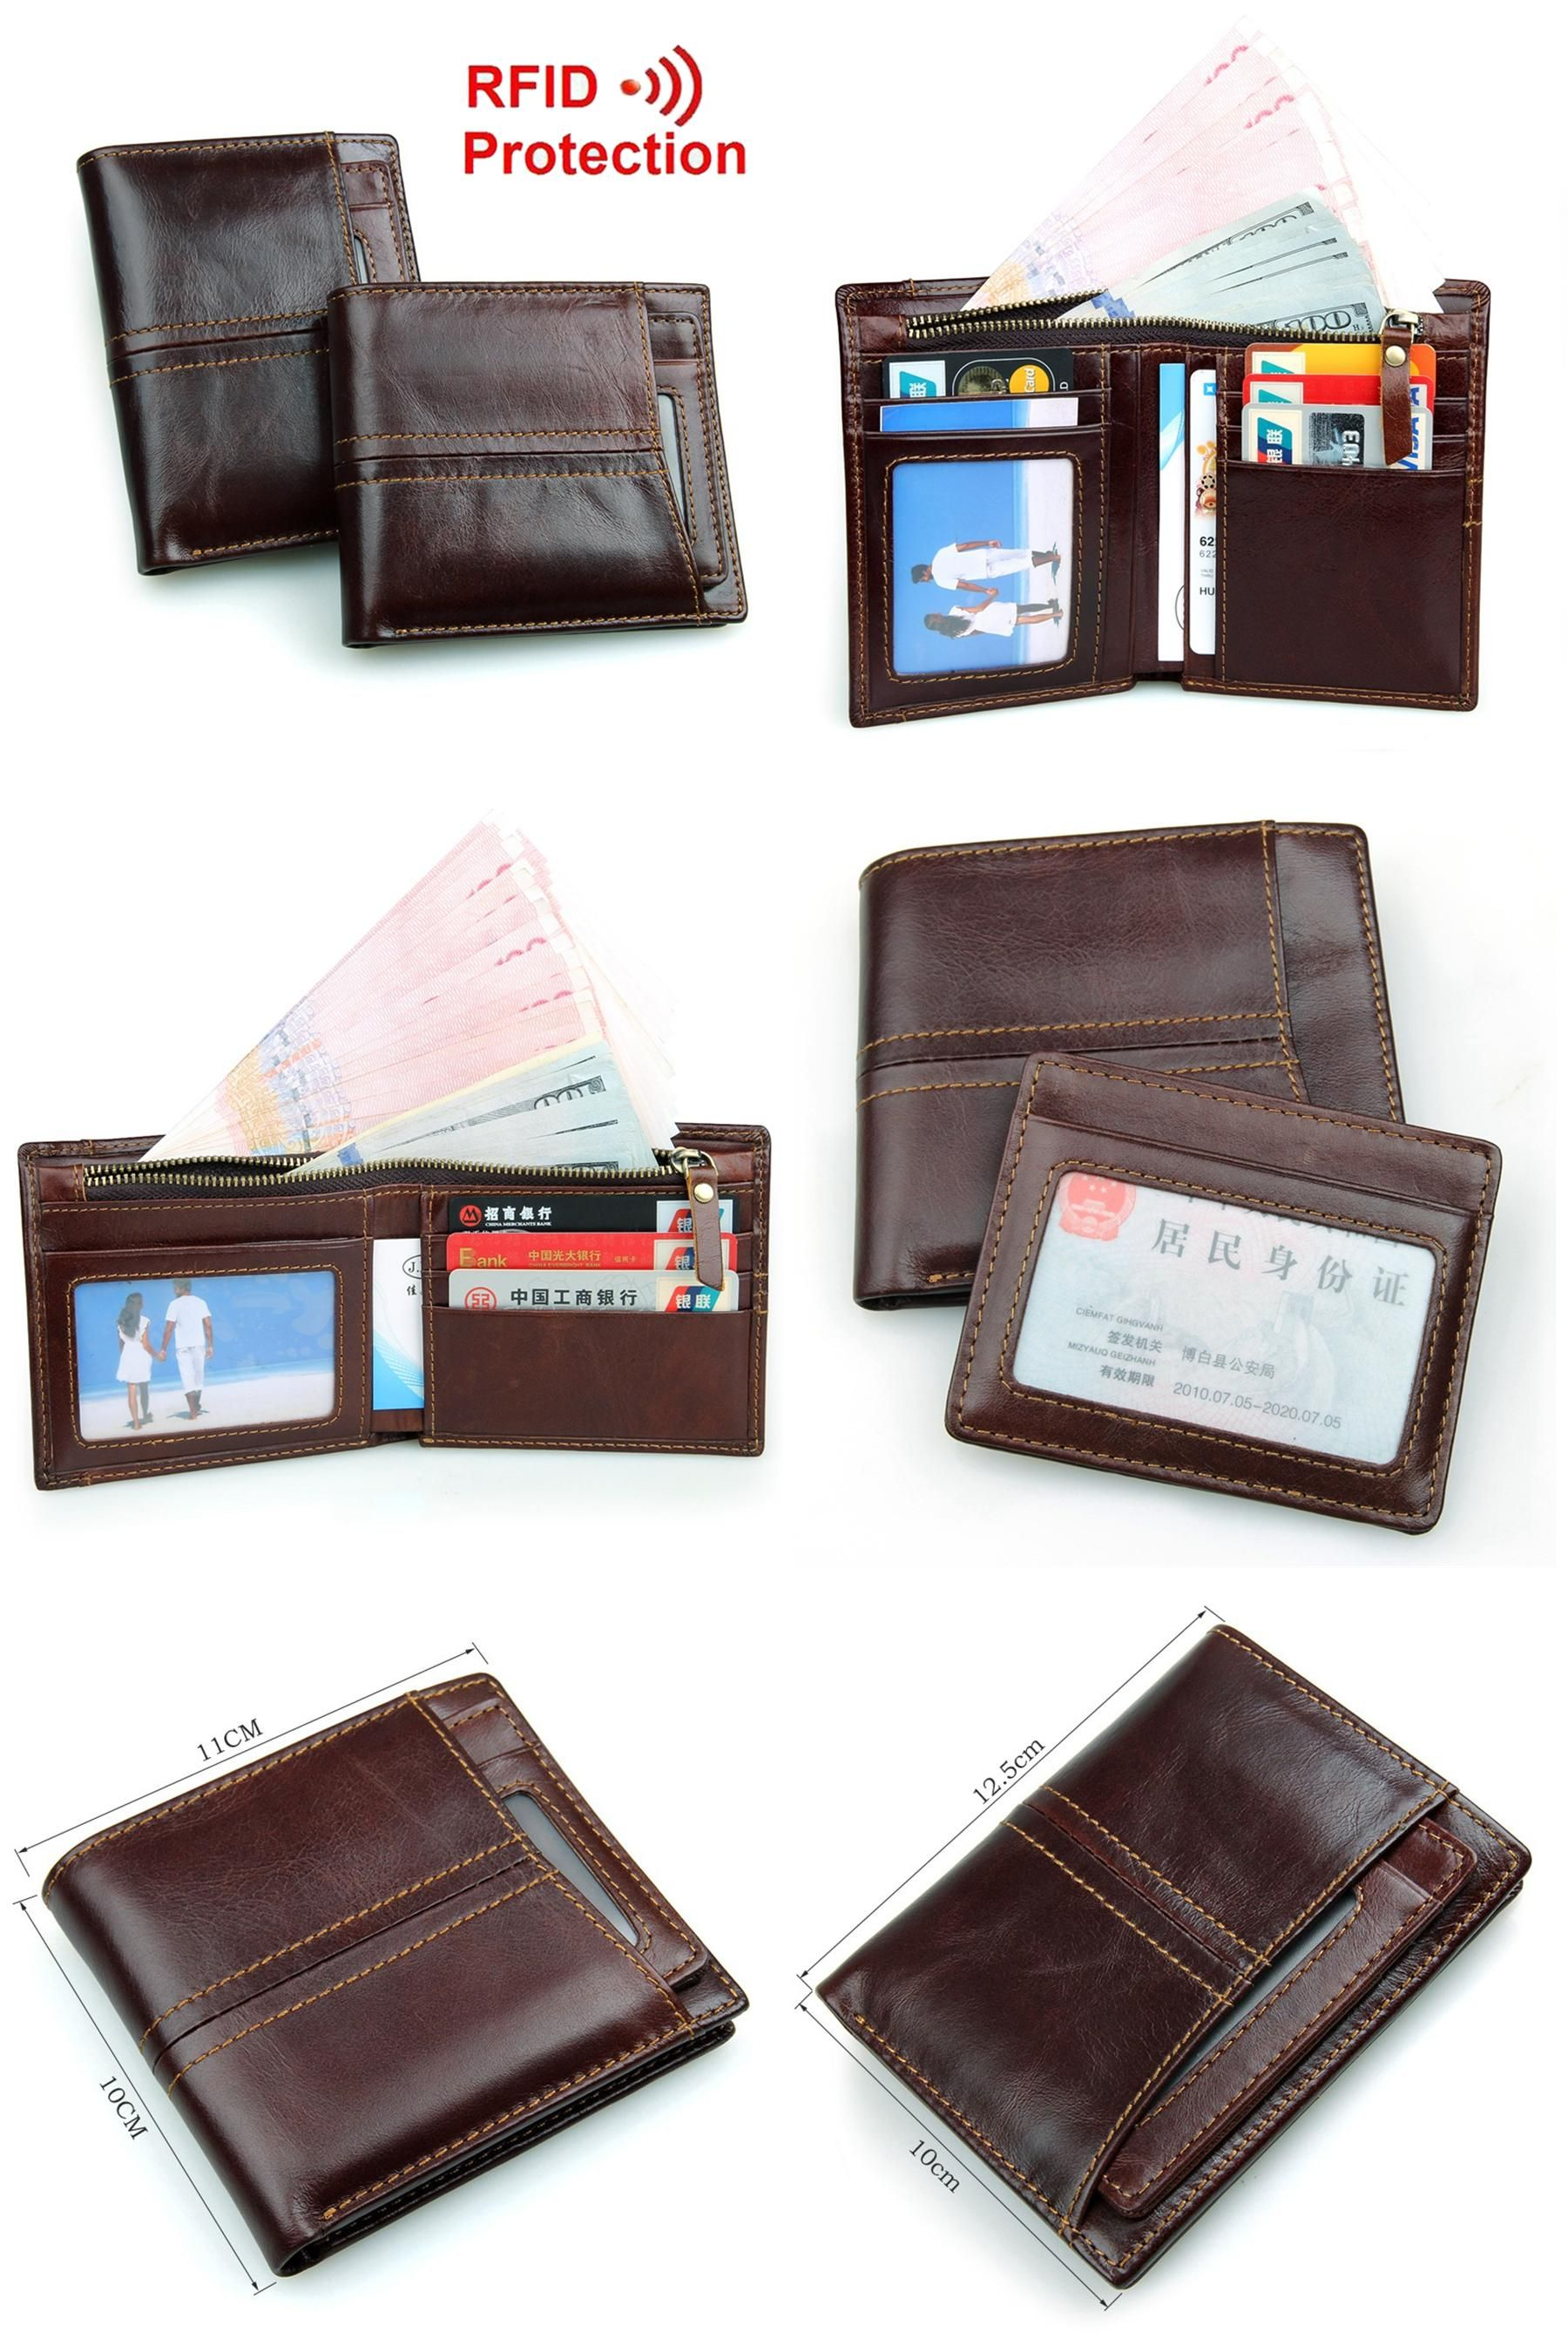 High Quality Leather Wallet with Detachable Travel Pass Holder